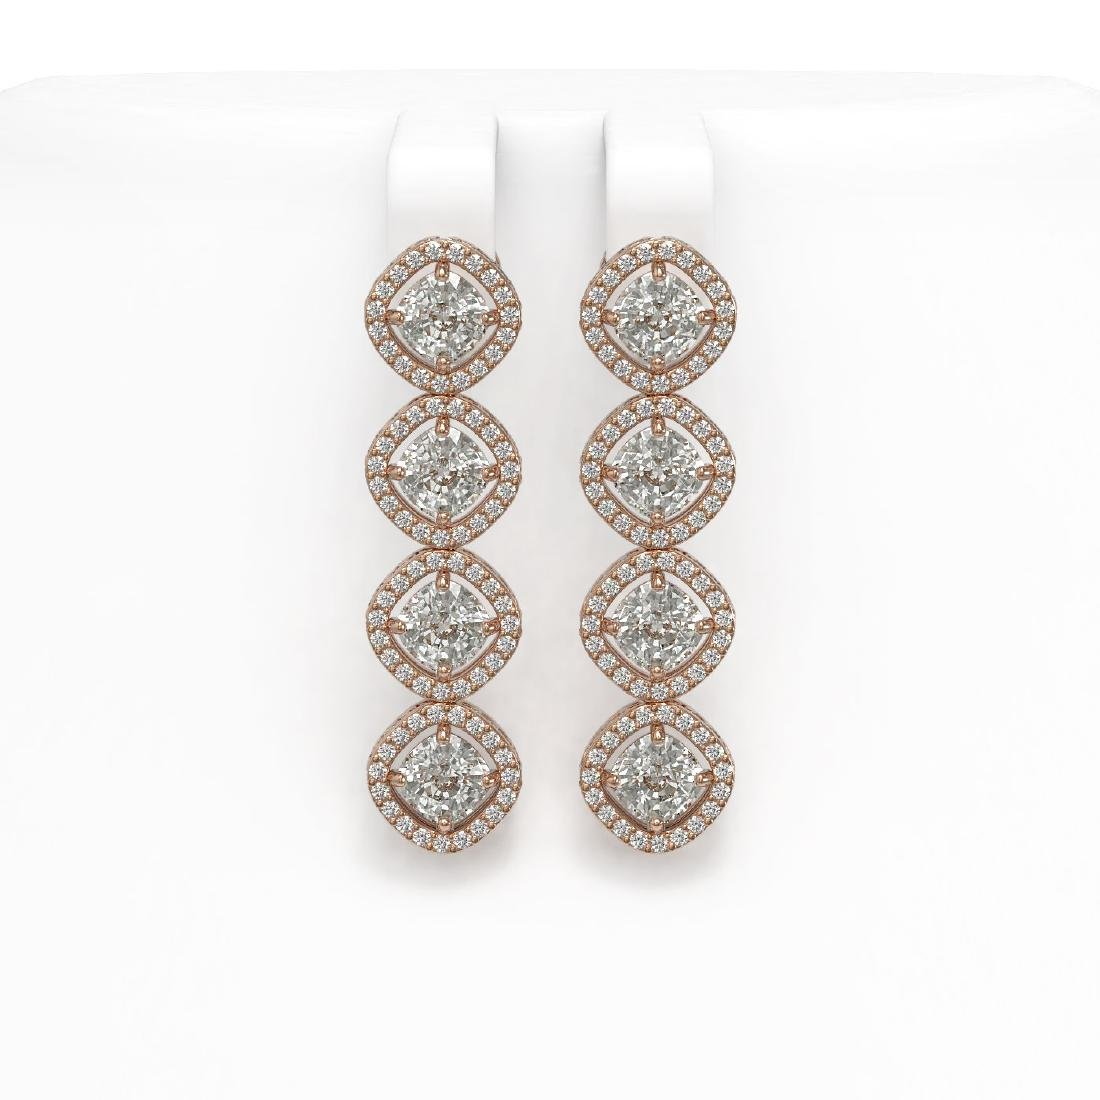 5.85 CTW Cushion Cut Diamond Designer Earrings 18K Rose